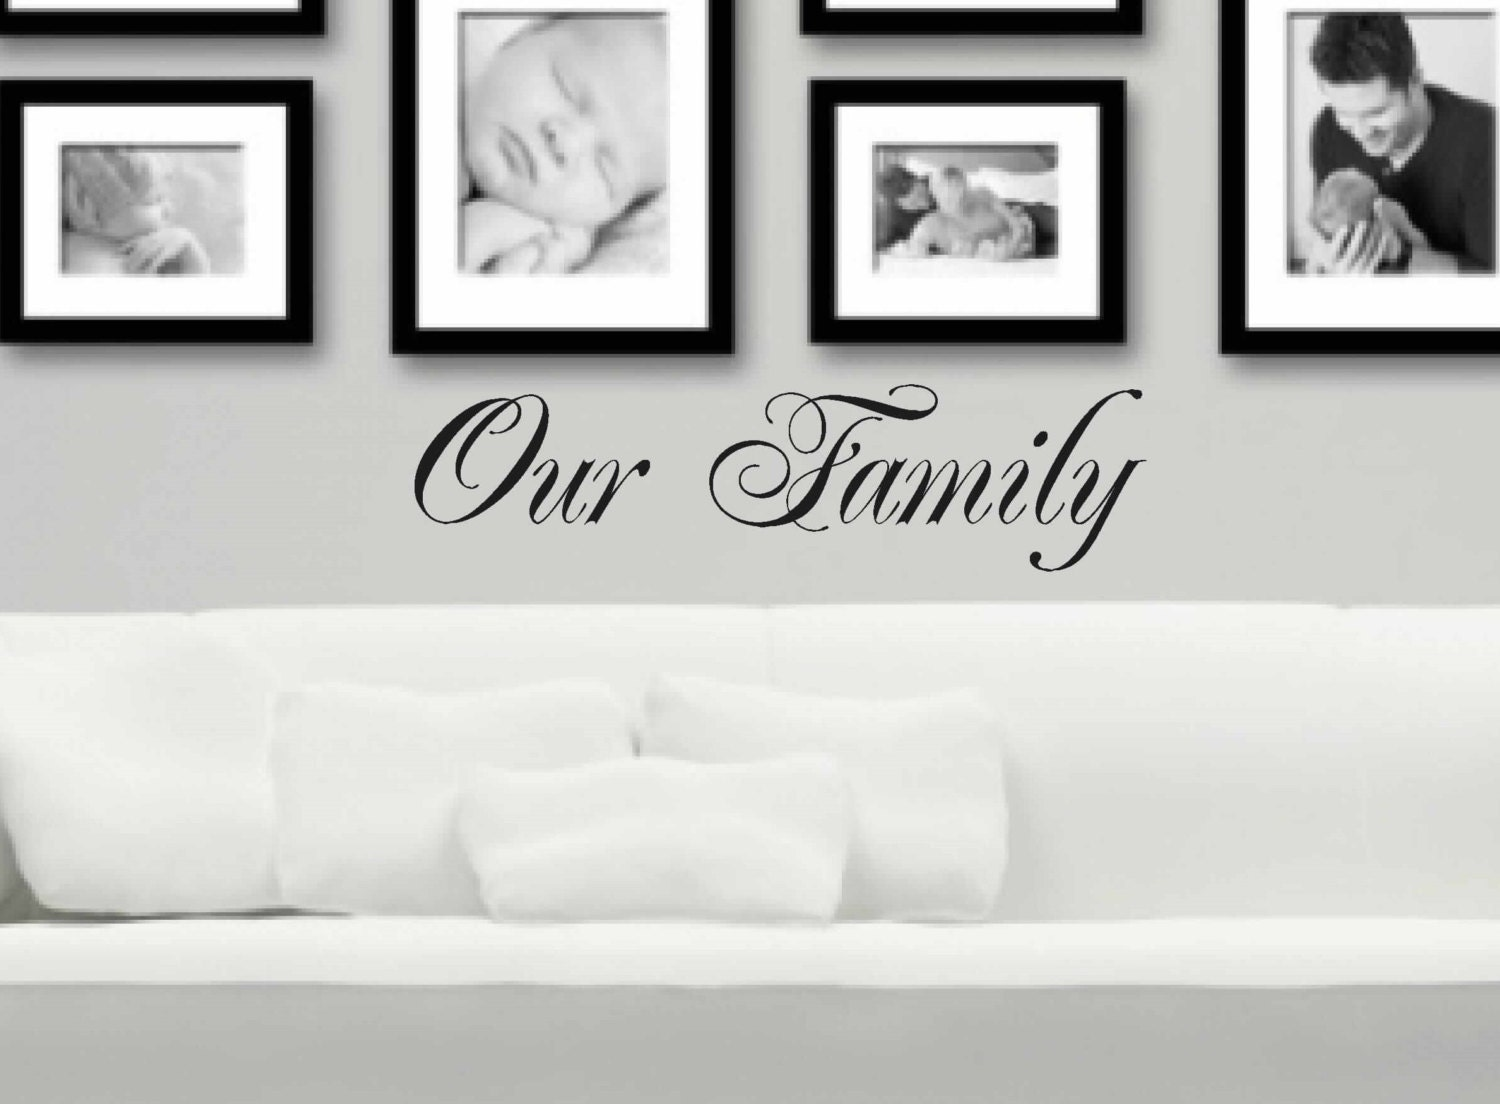 Our family wall decal vinyl wall decor entryway decal zoom amipublicfo Image collections